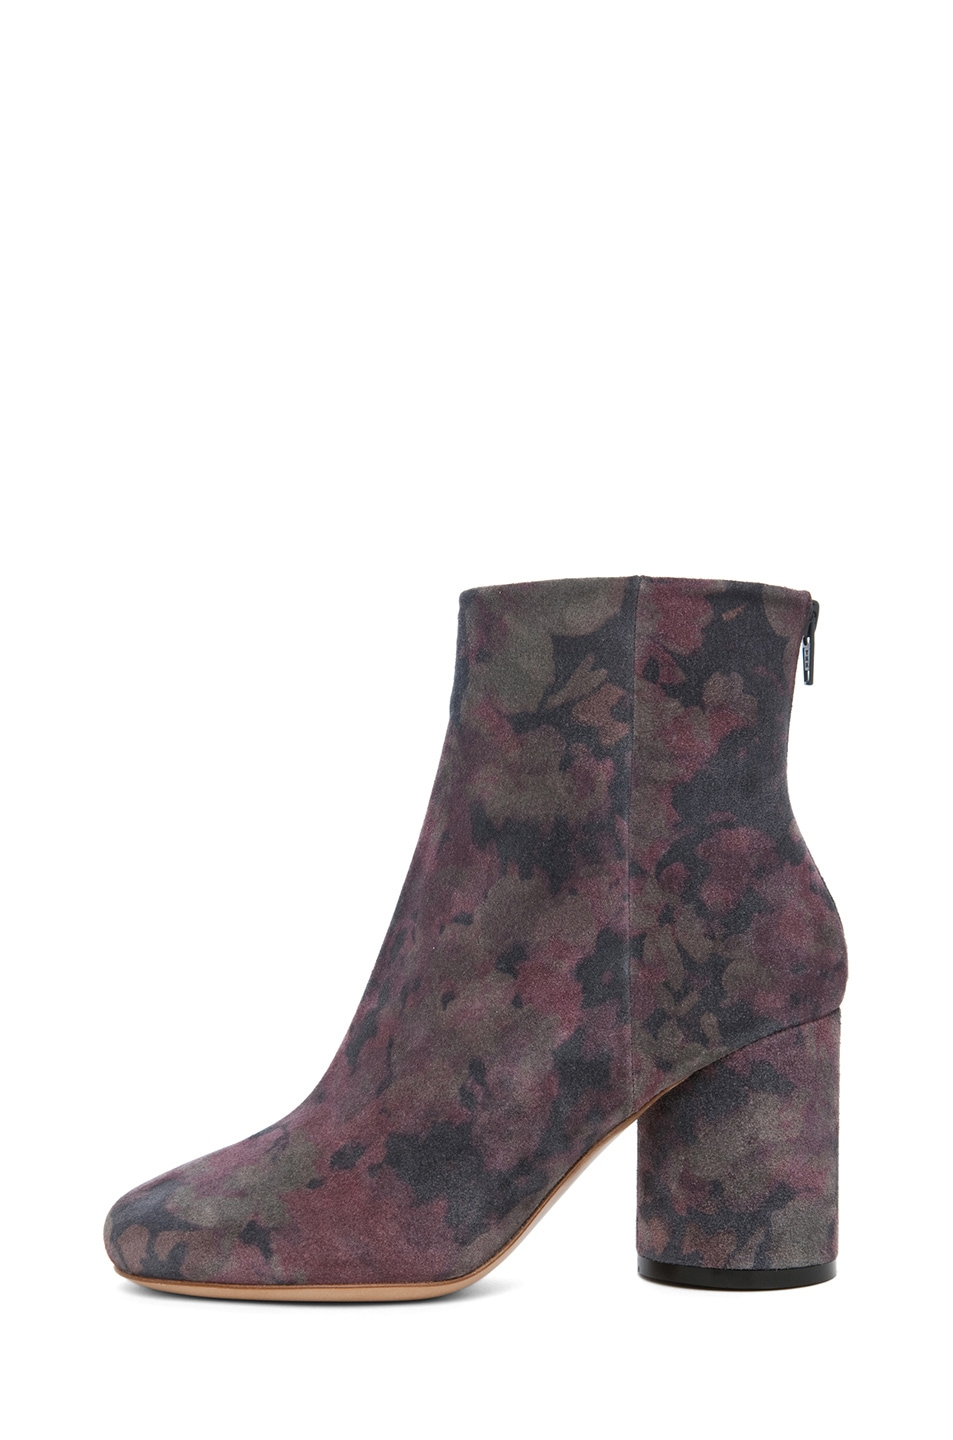 Image 1 of Maison Margiela Suede Printed Bootie in Dark Flowers